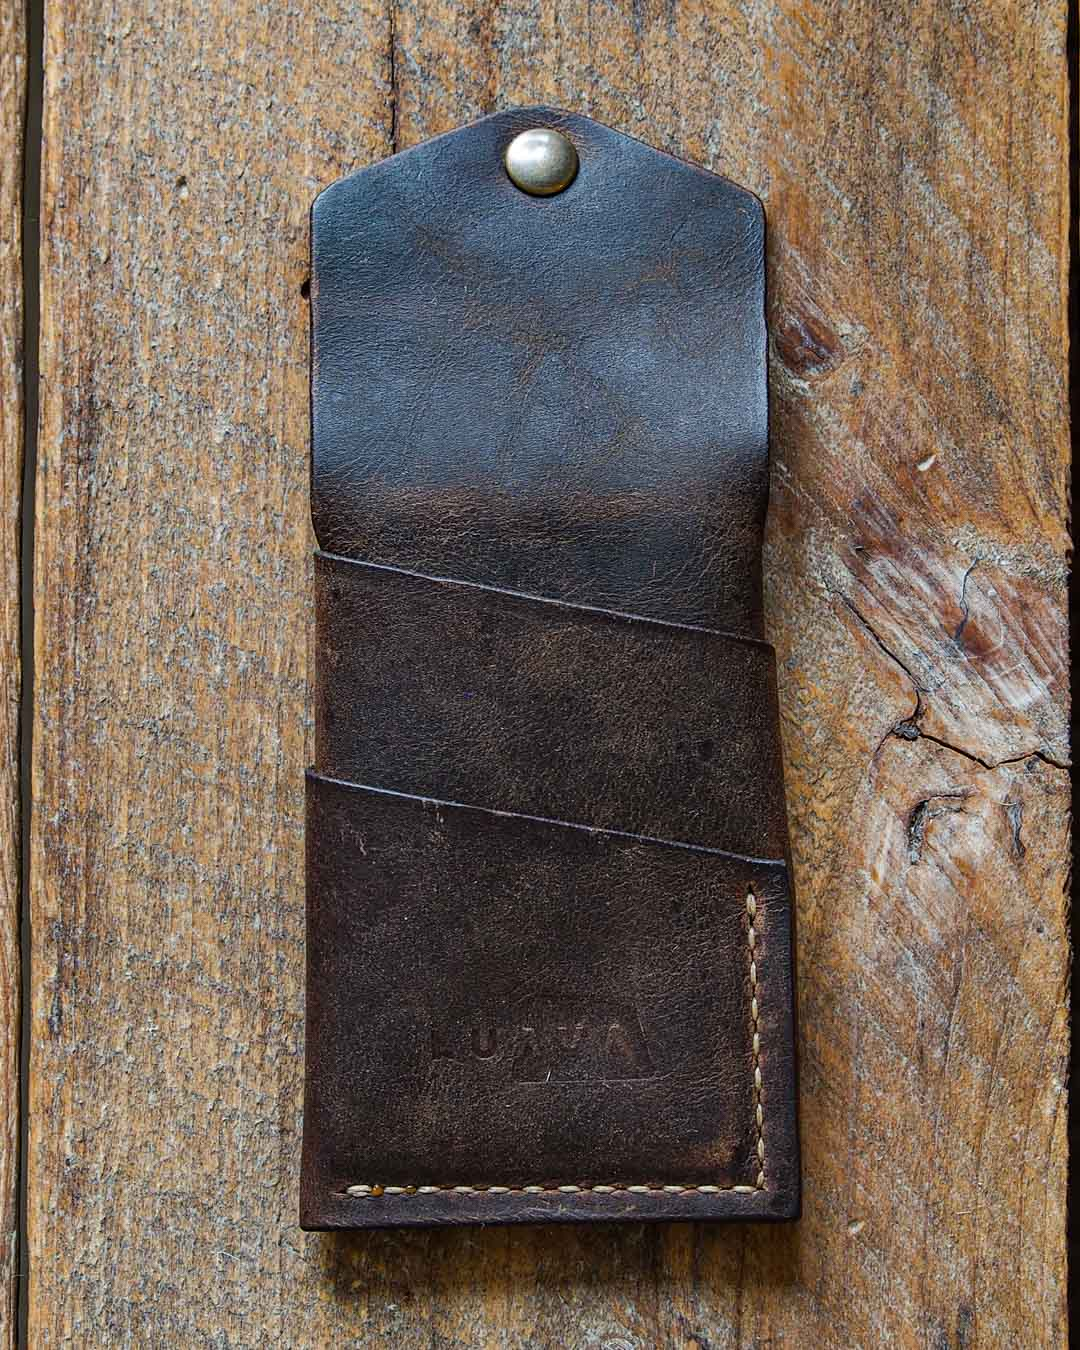 Luava handcrafted leather overfold wallet rustic cardholder card holder handmade in finland back open